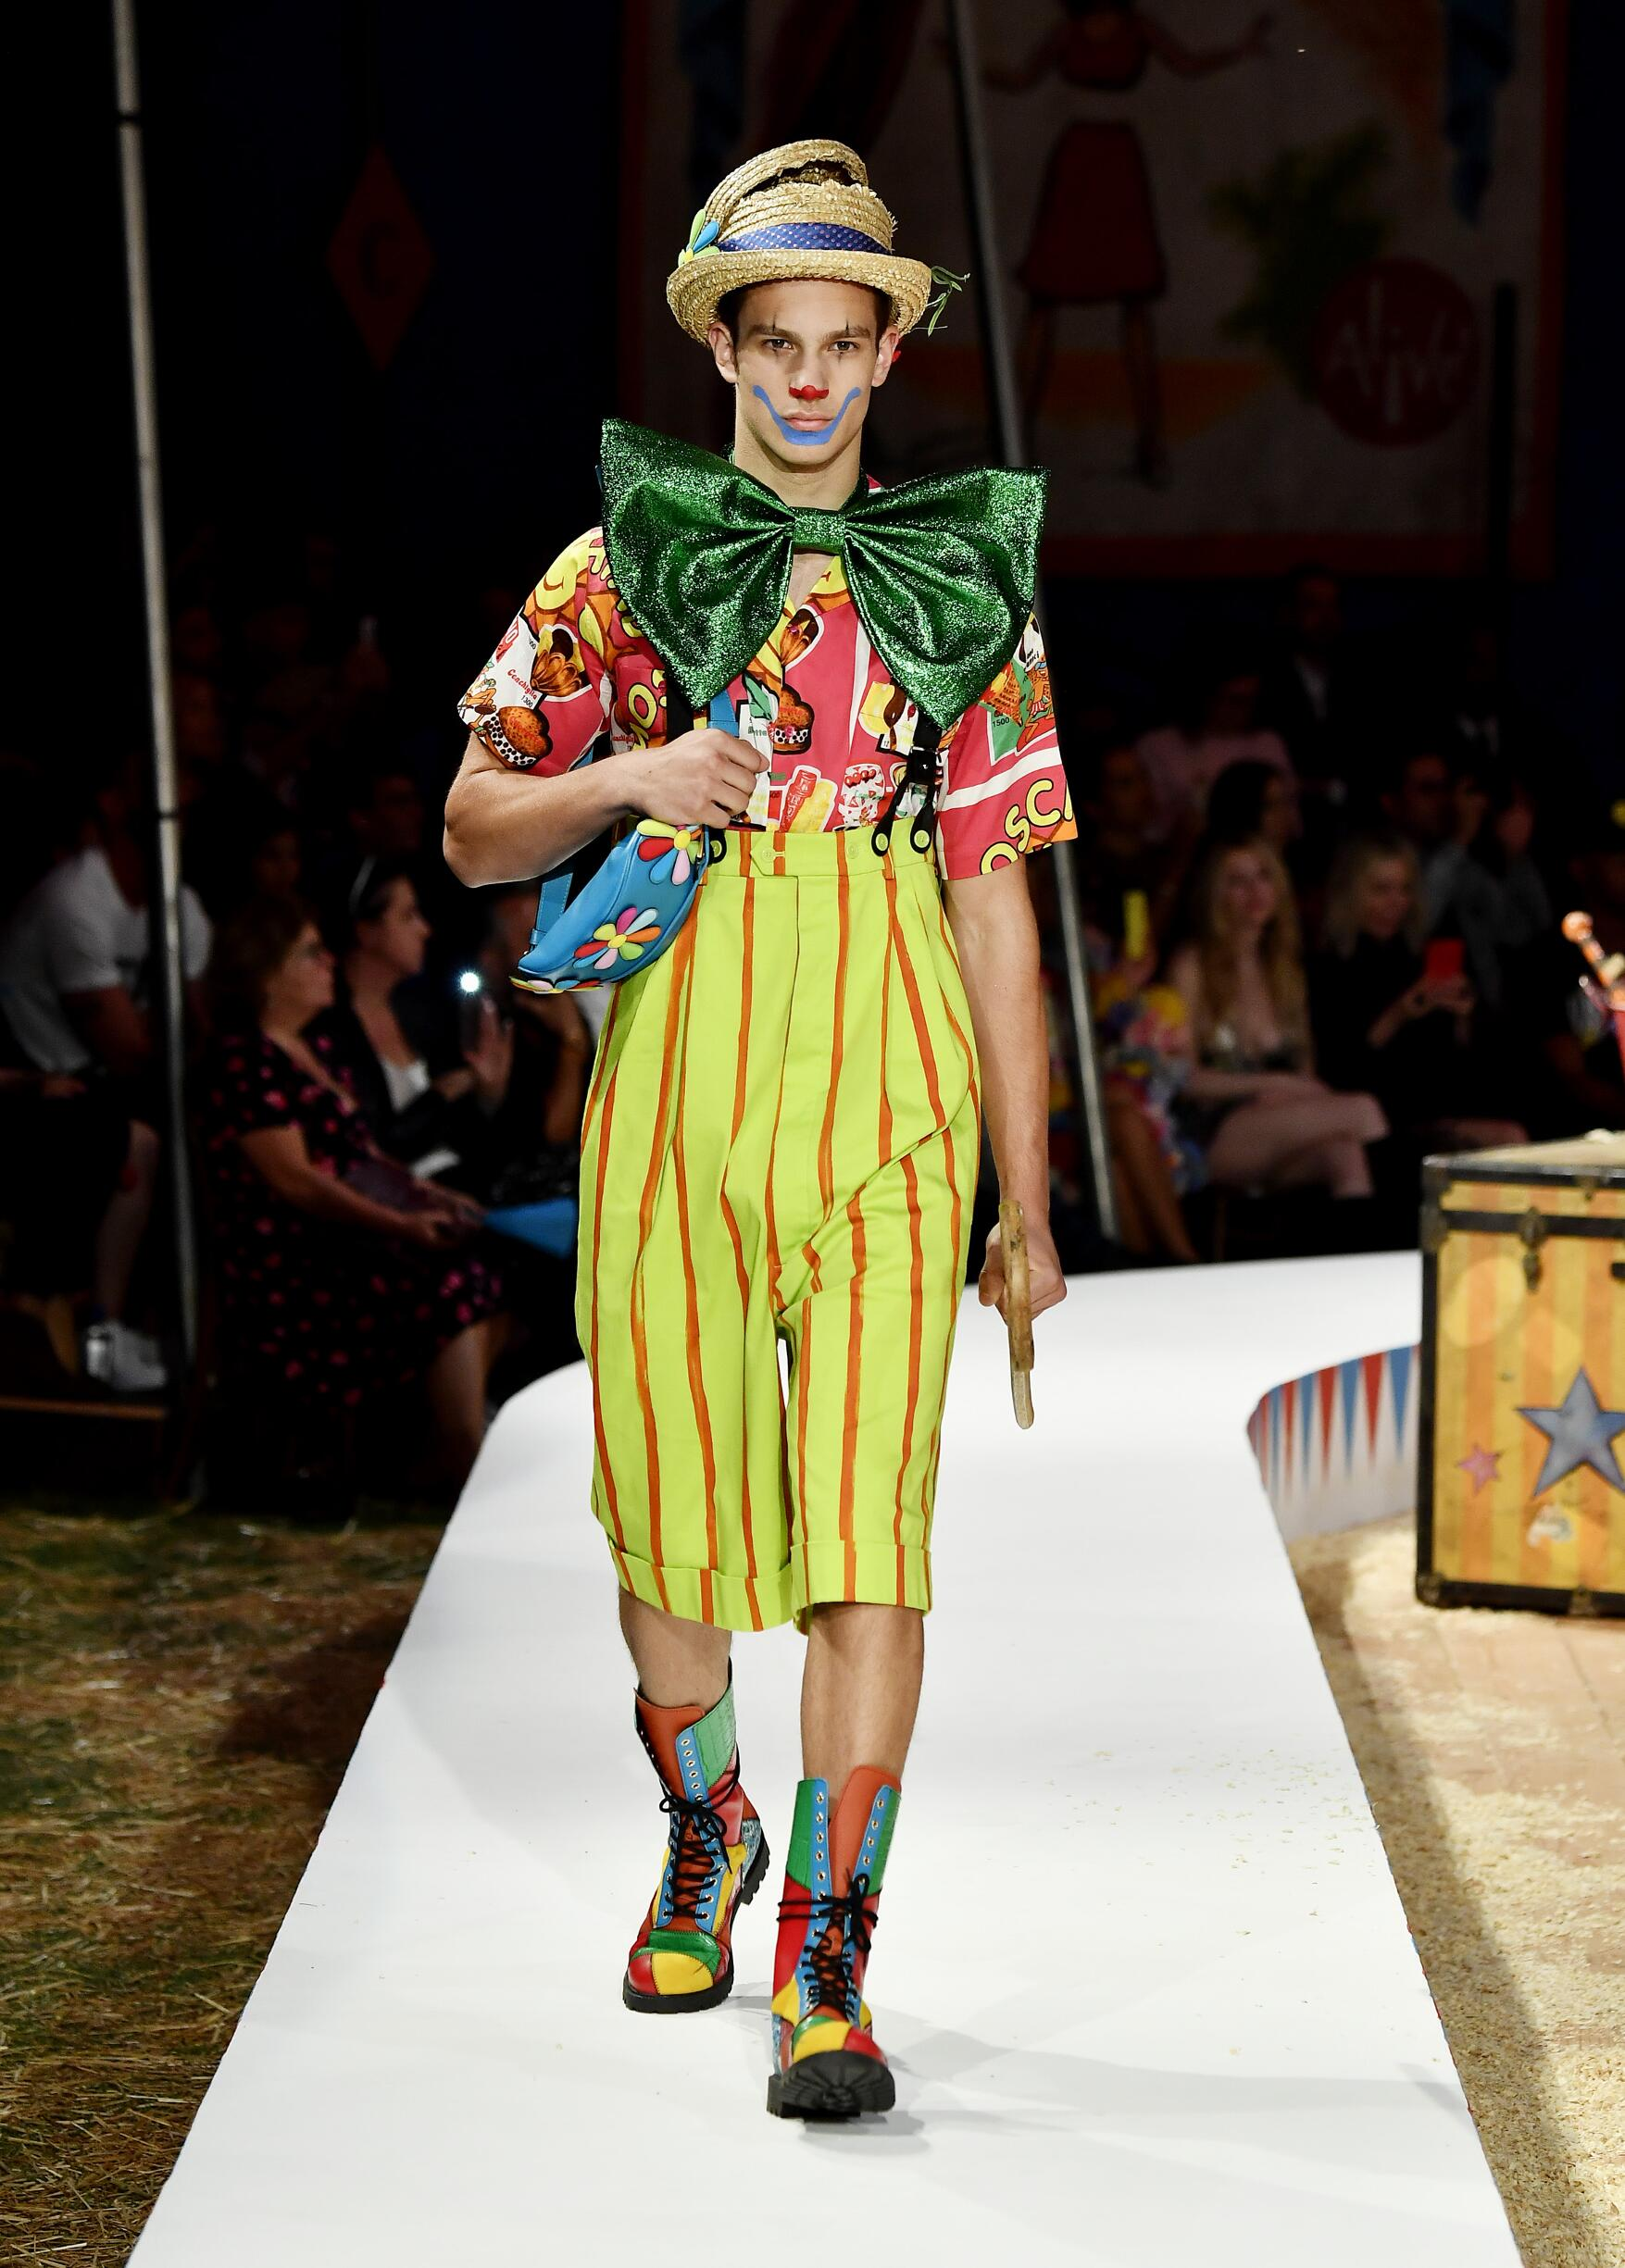 Moschino Spring Summer 2019 Menswear and Women's Resort Collection Look 69 Los Angeles